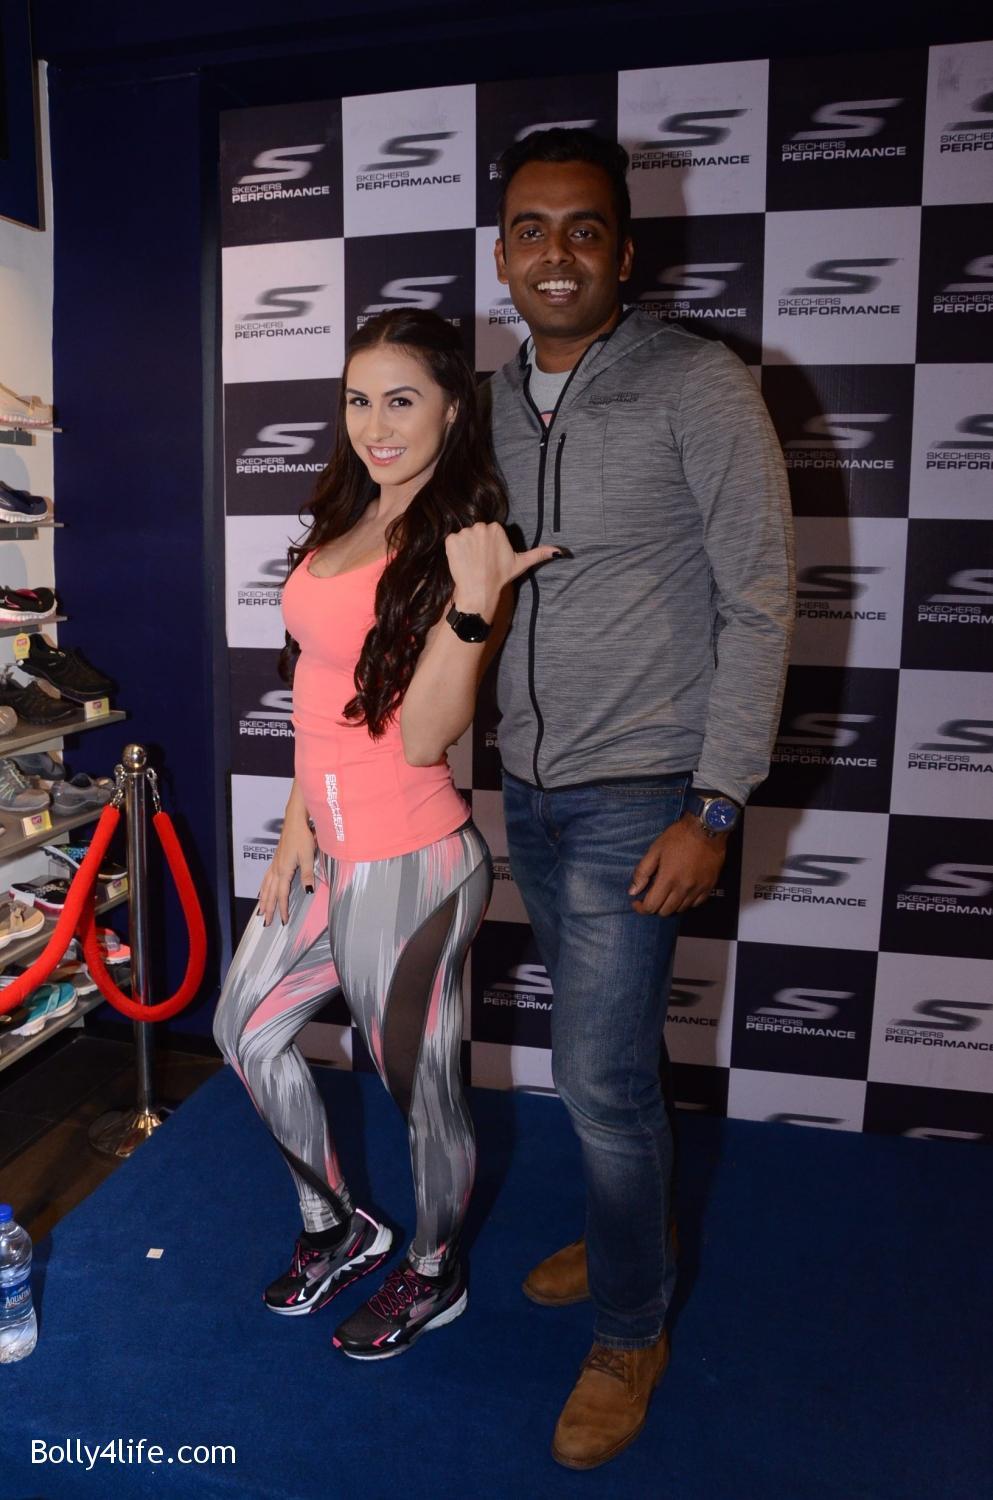 Lauren-Gottlieb-at-the-skechers-Go-Goa-dance-press-conference-5.jpg